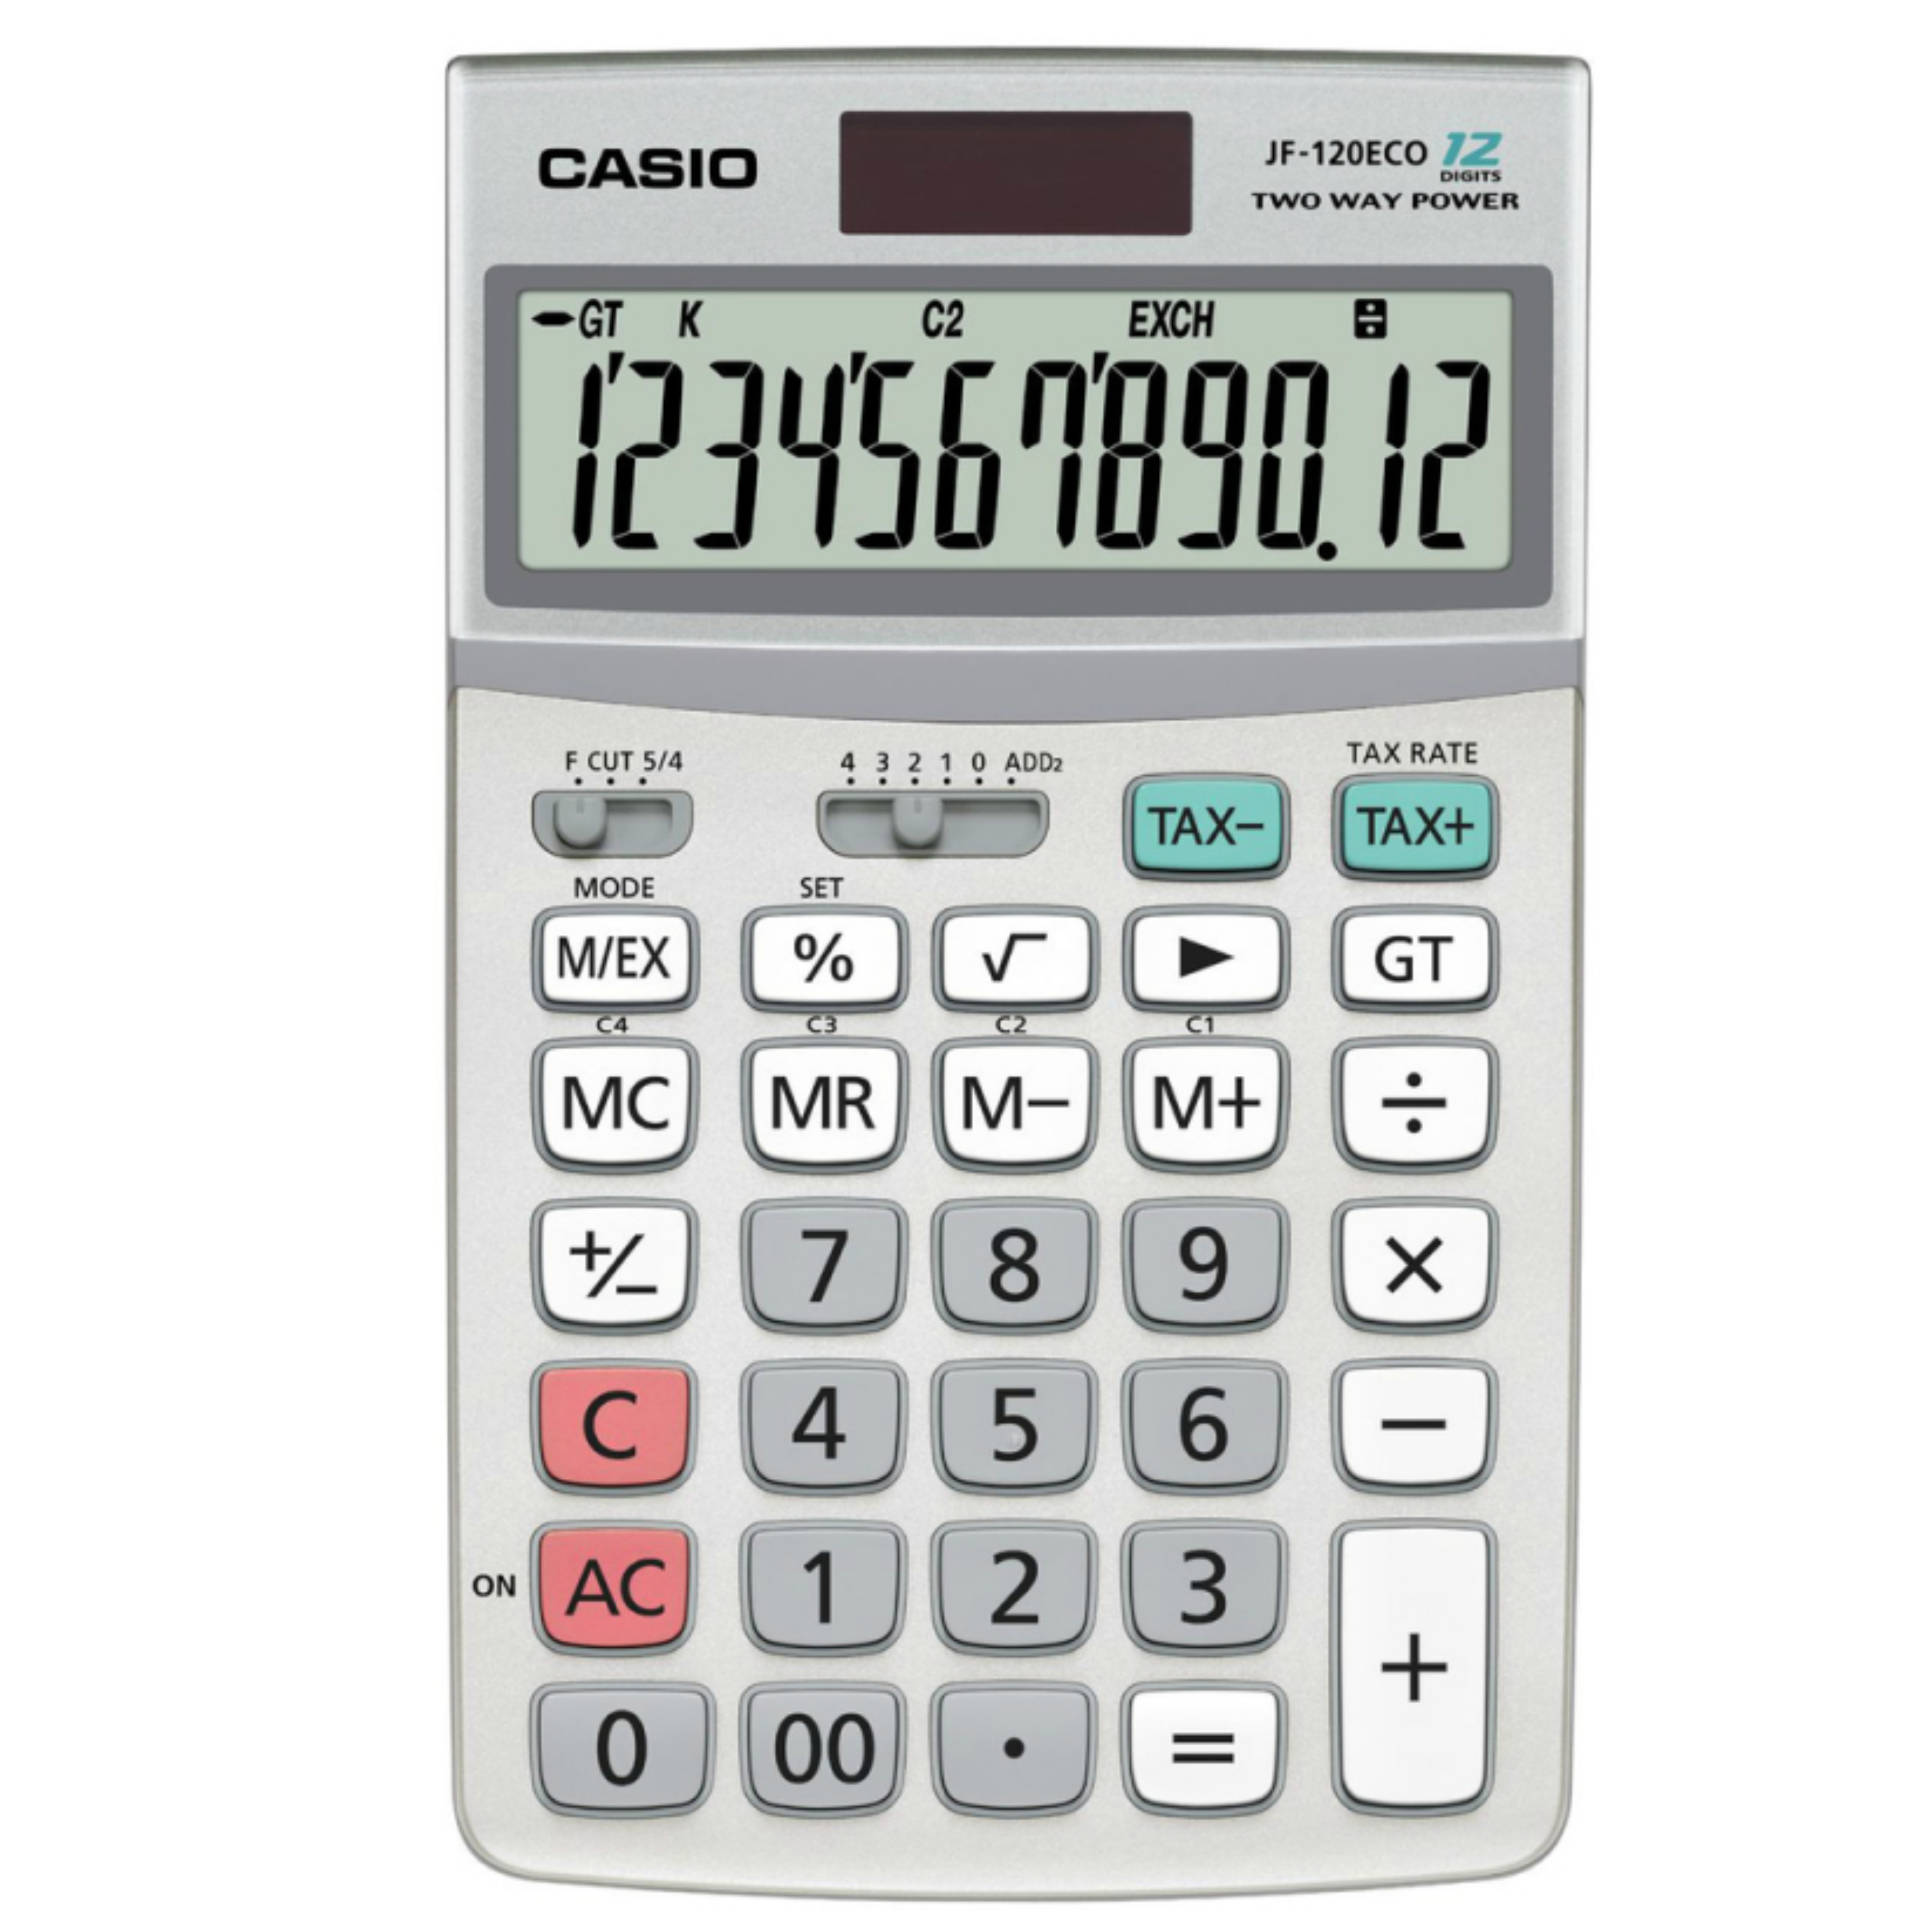 Casio New JF120ECO-W ECO Desktop Calculator|Dual Powerd|12 Digit|Multy Function|